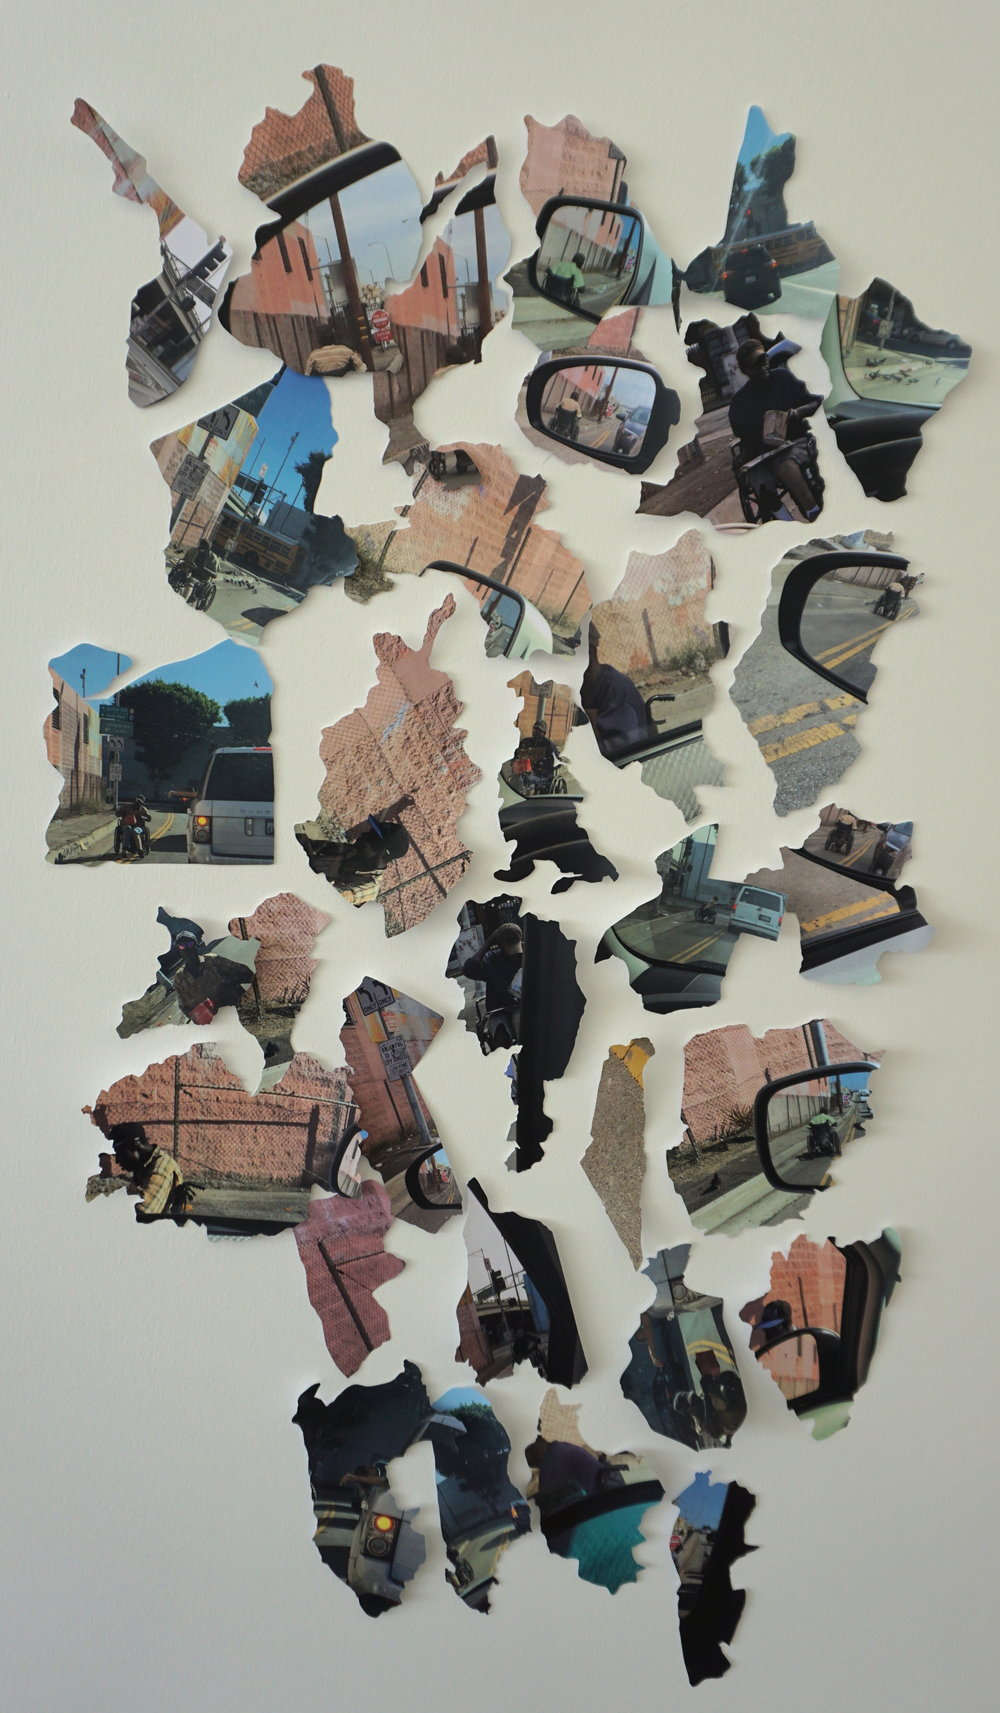 Photography, collage, 42x30 cm